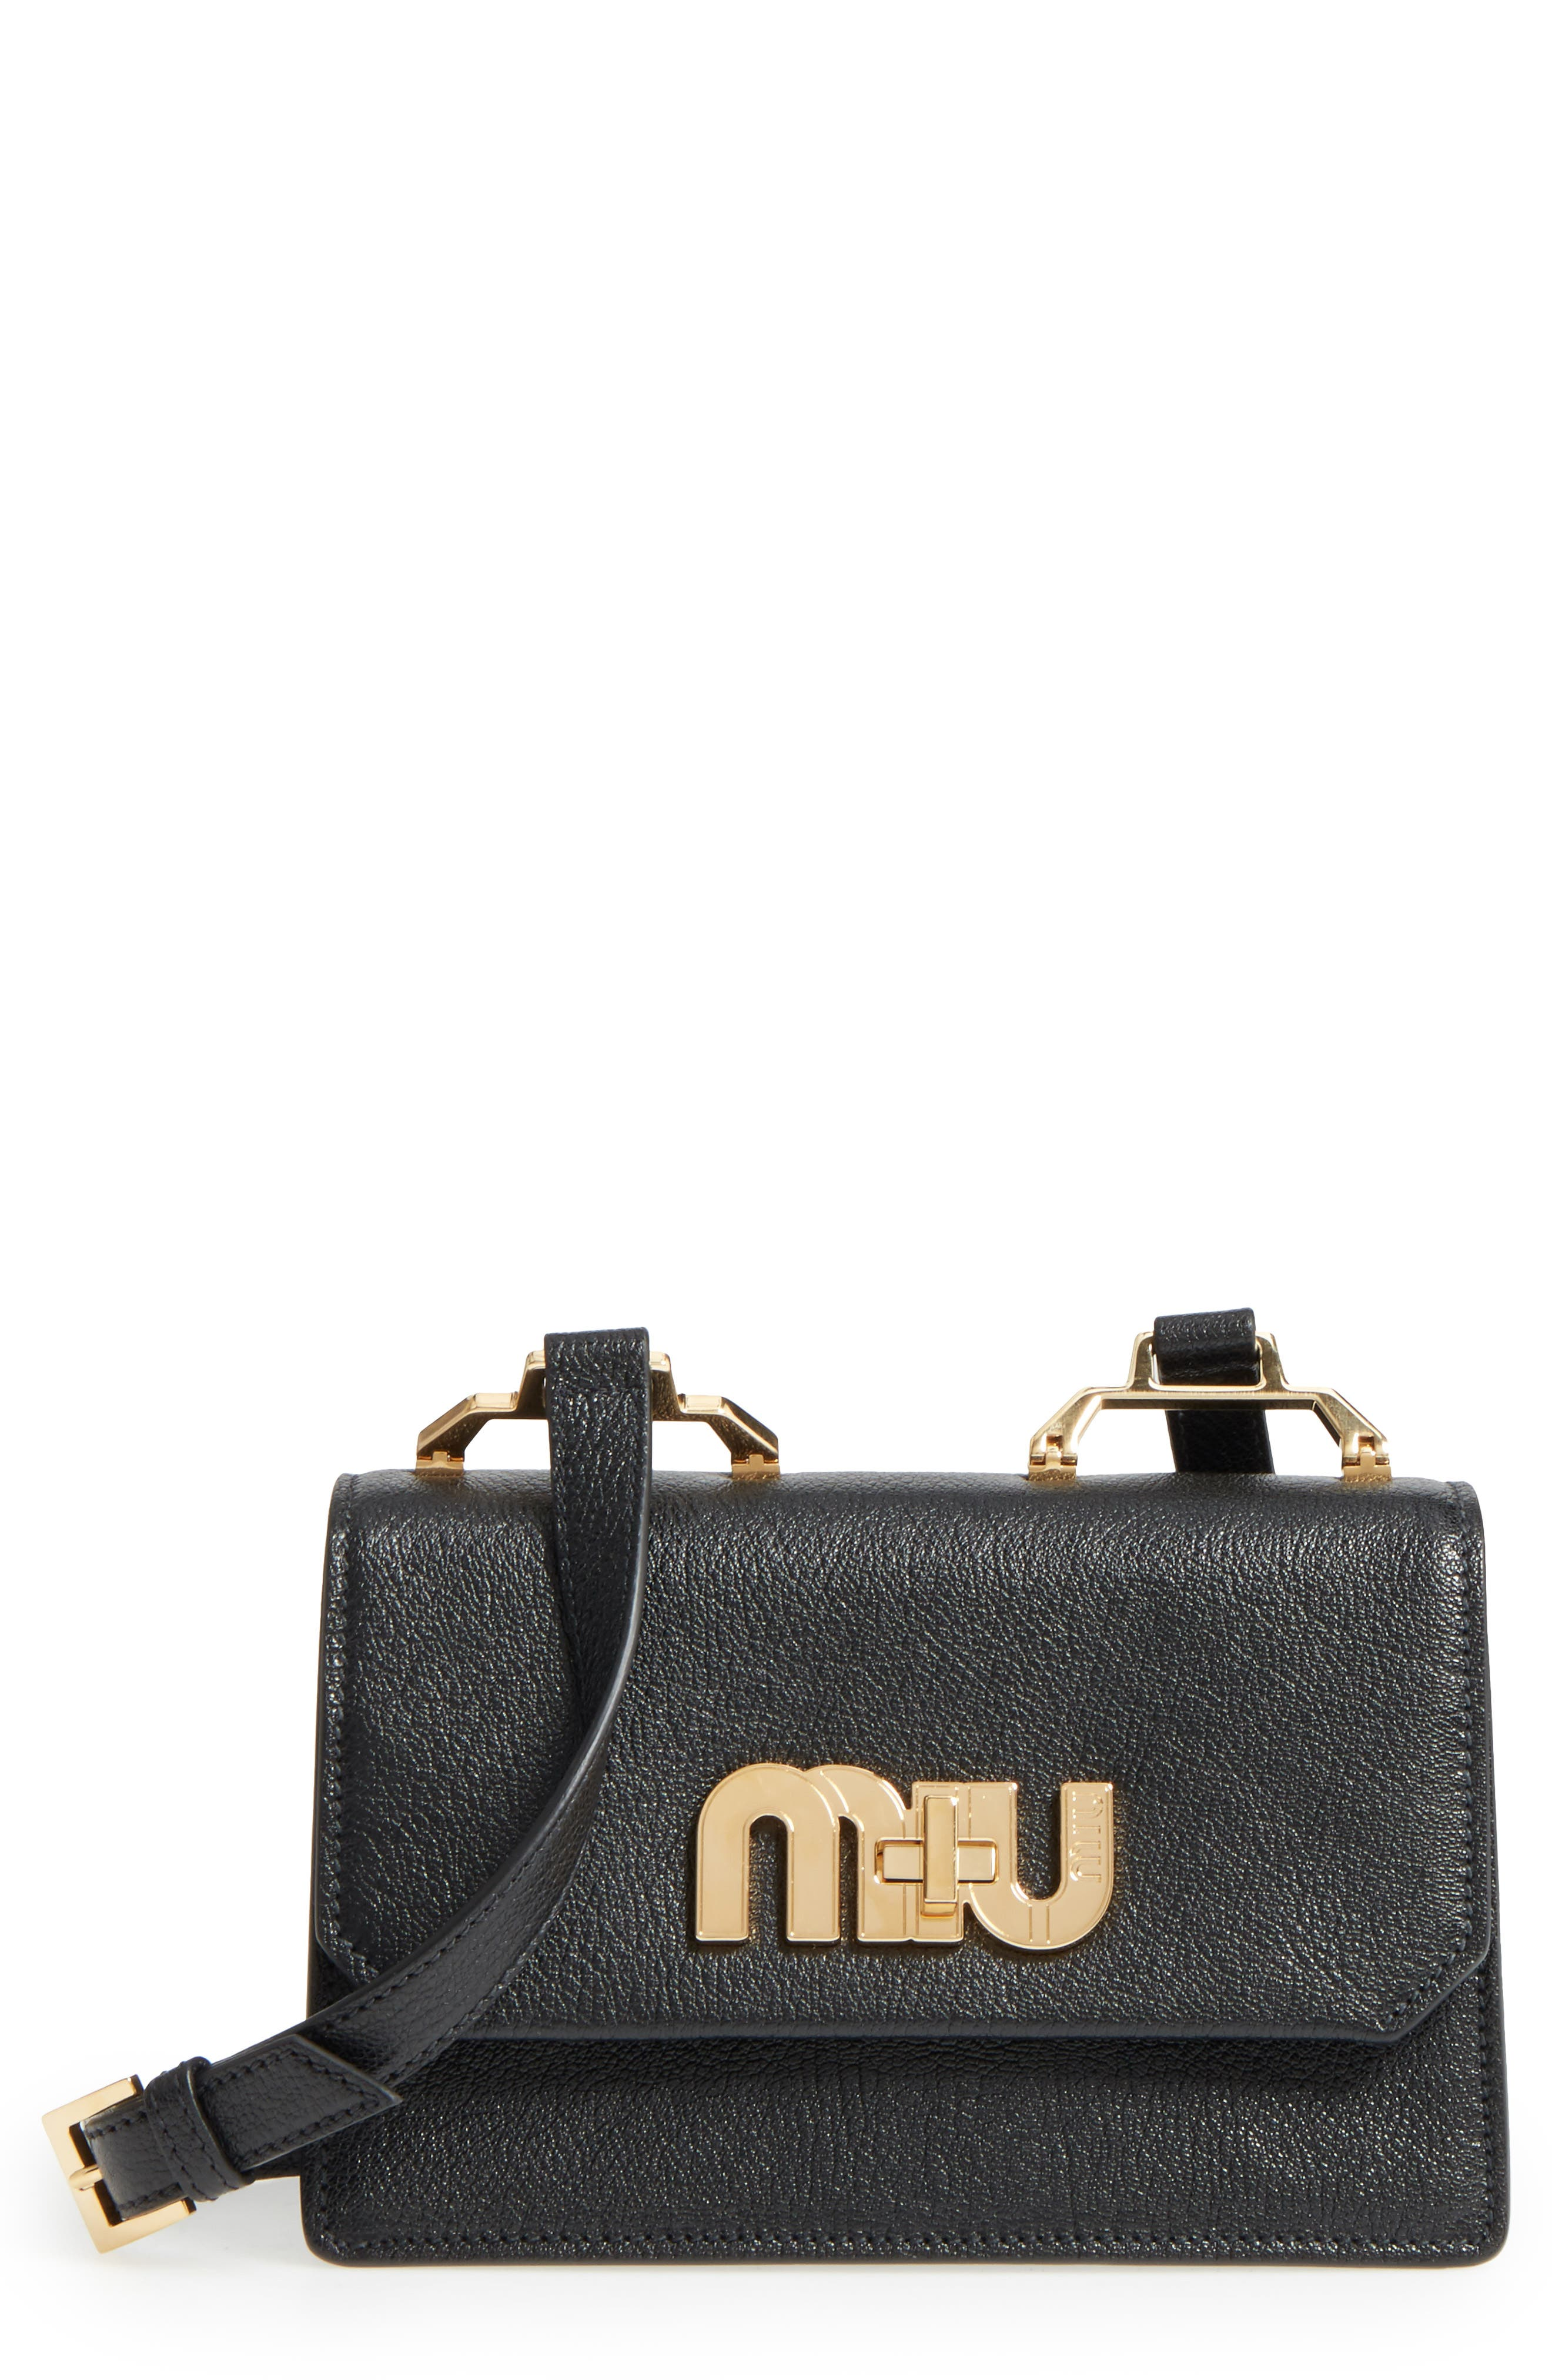 Madras Leather Crossbody Bag,                             Main thumbnail 1, color,                             Nero